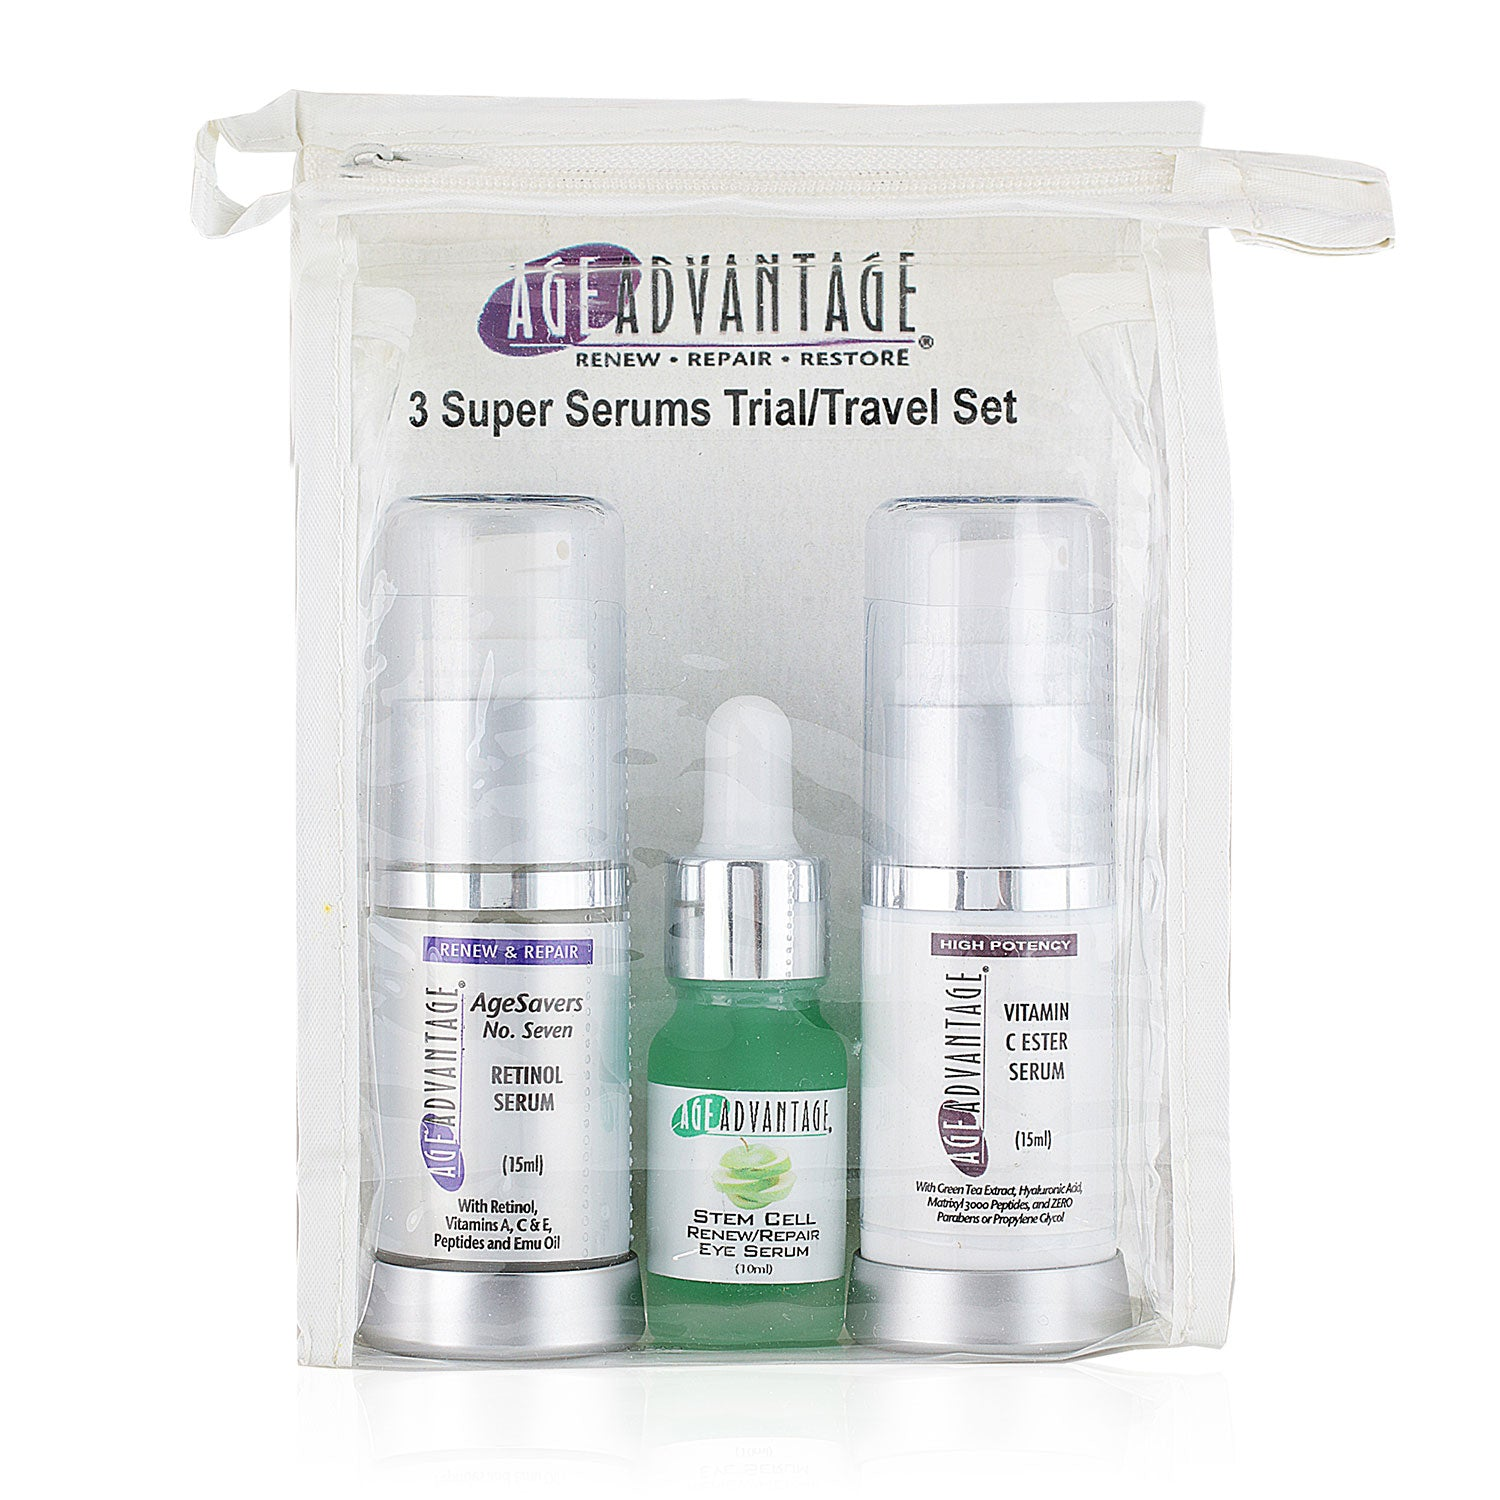 3 Super Serums Trial/Travel Set